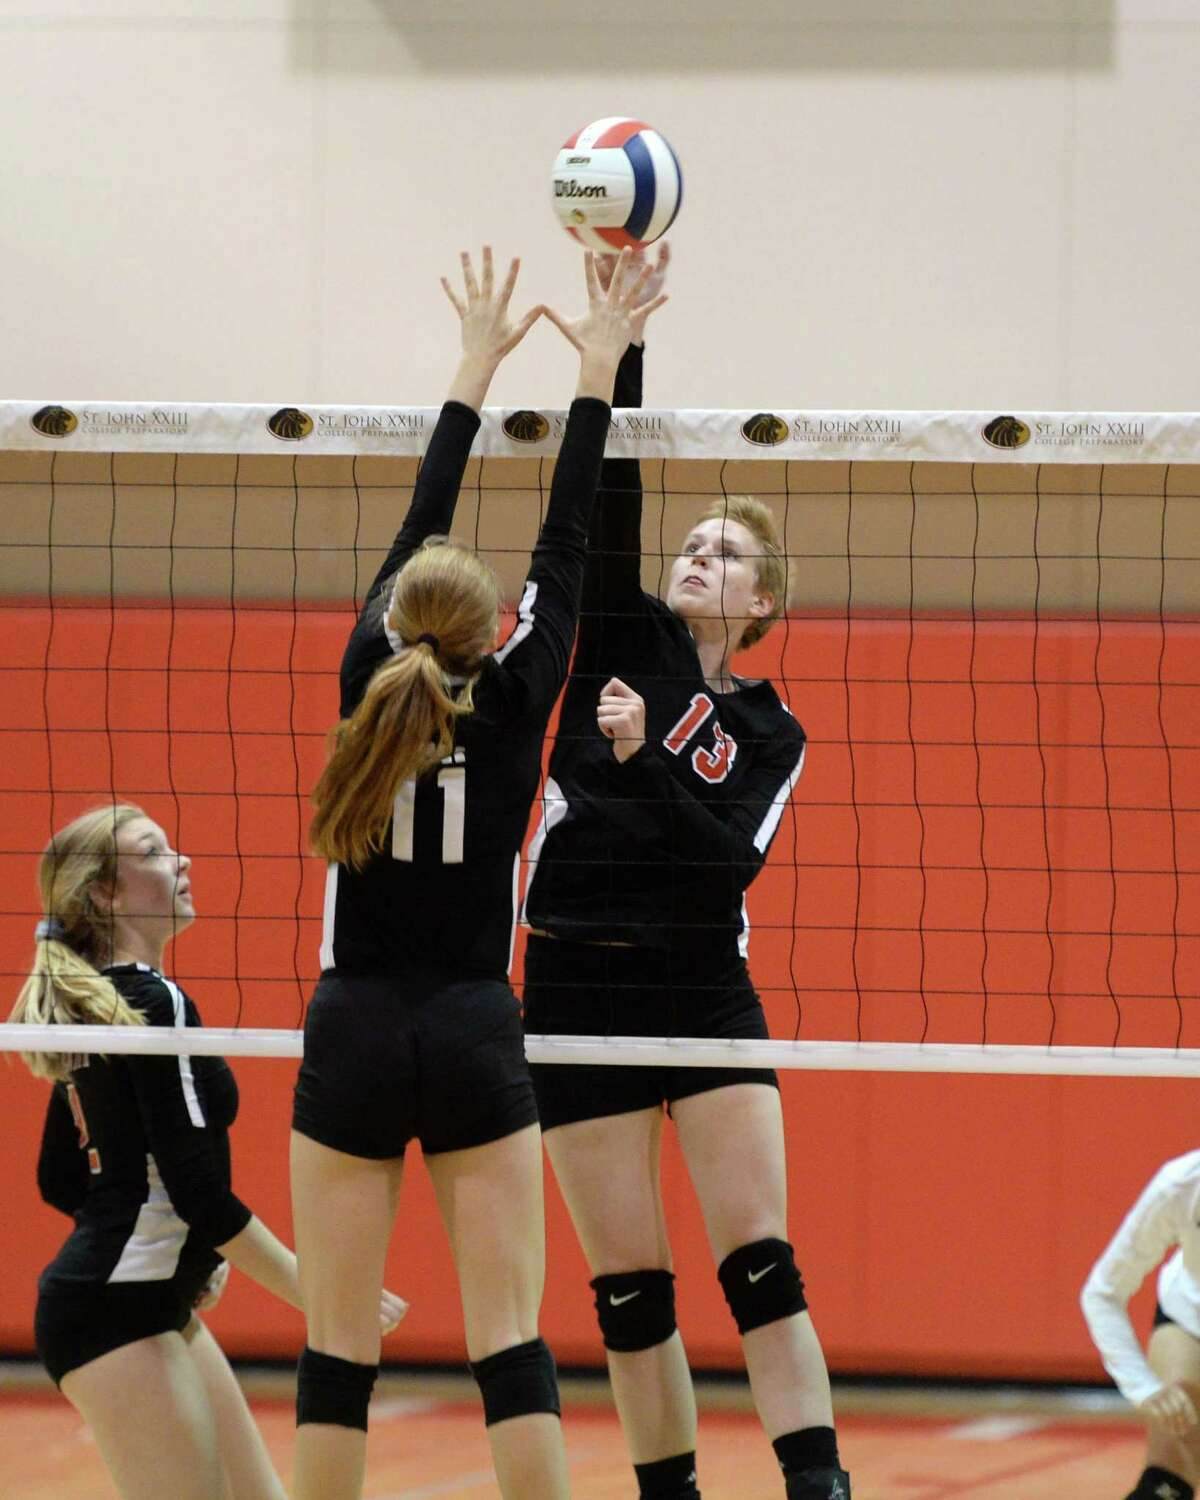 Elena Welsh (13) of St. John XXIII attempts a kill shot in the second set of a high school volleyball match between the St. John XXIII Lions and the Incarnate Word Falcons on September 4, 2018 at St. John XXIII College Preparatory, Katy, TX.